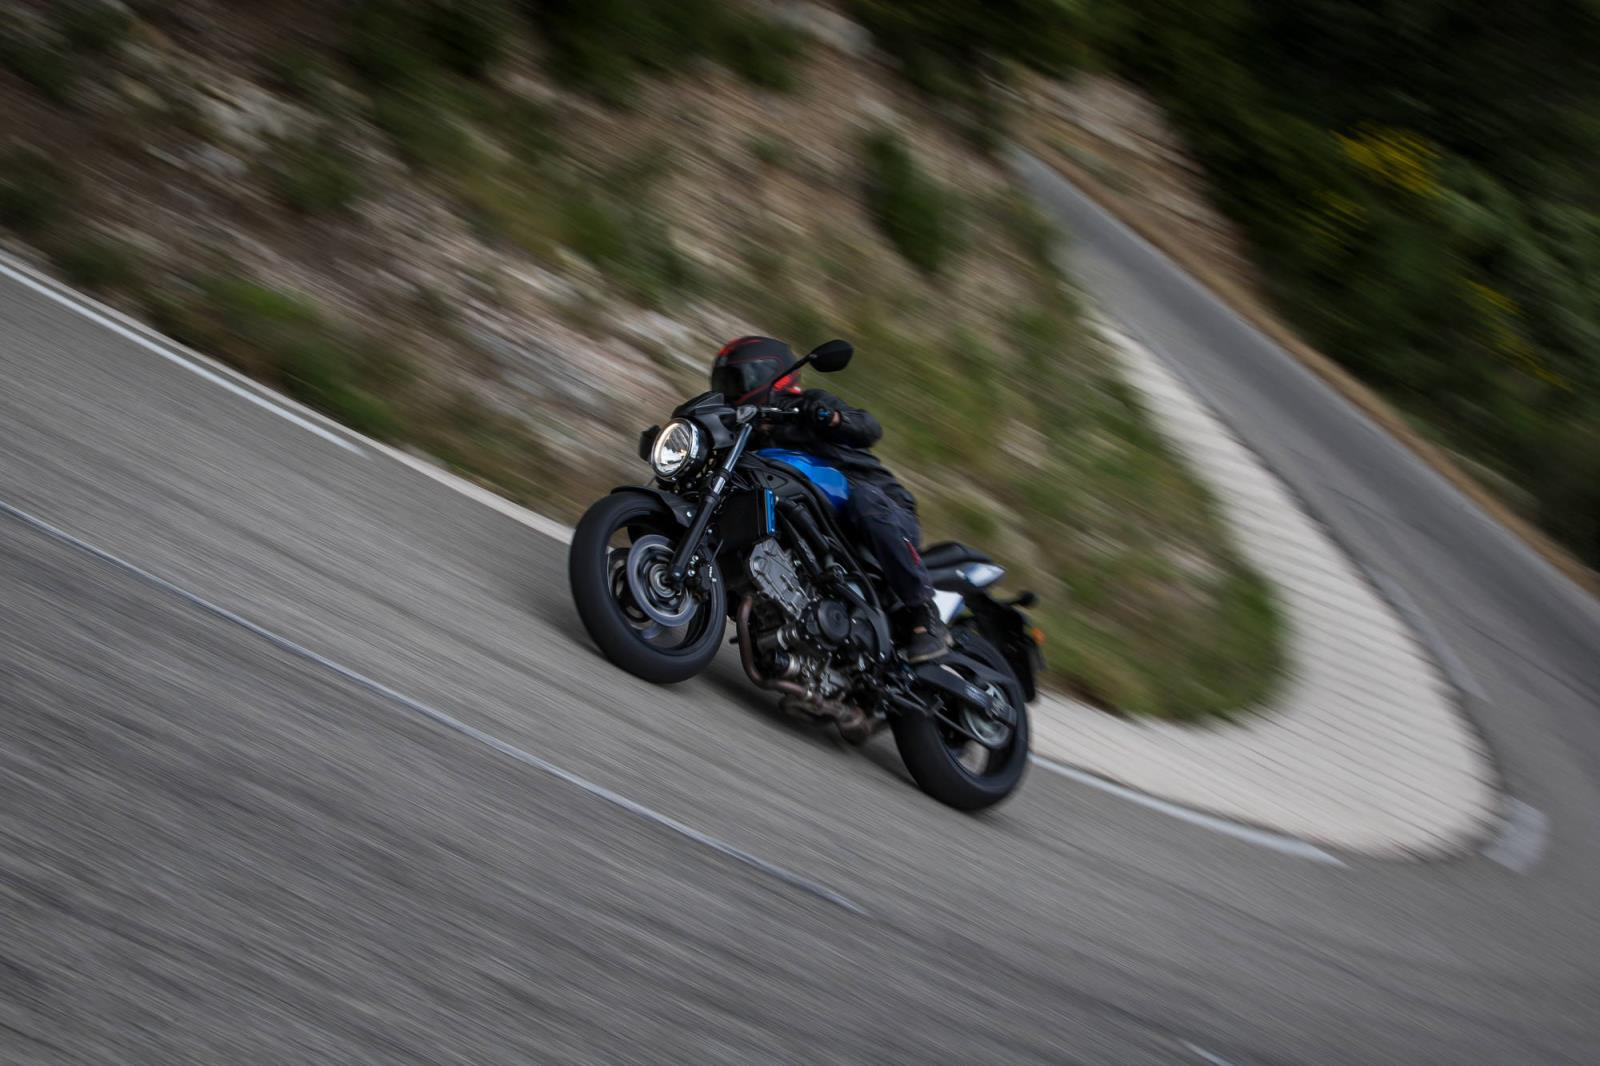 MICHELIN_Road_5_Suzuki_SV650_015.jpg